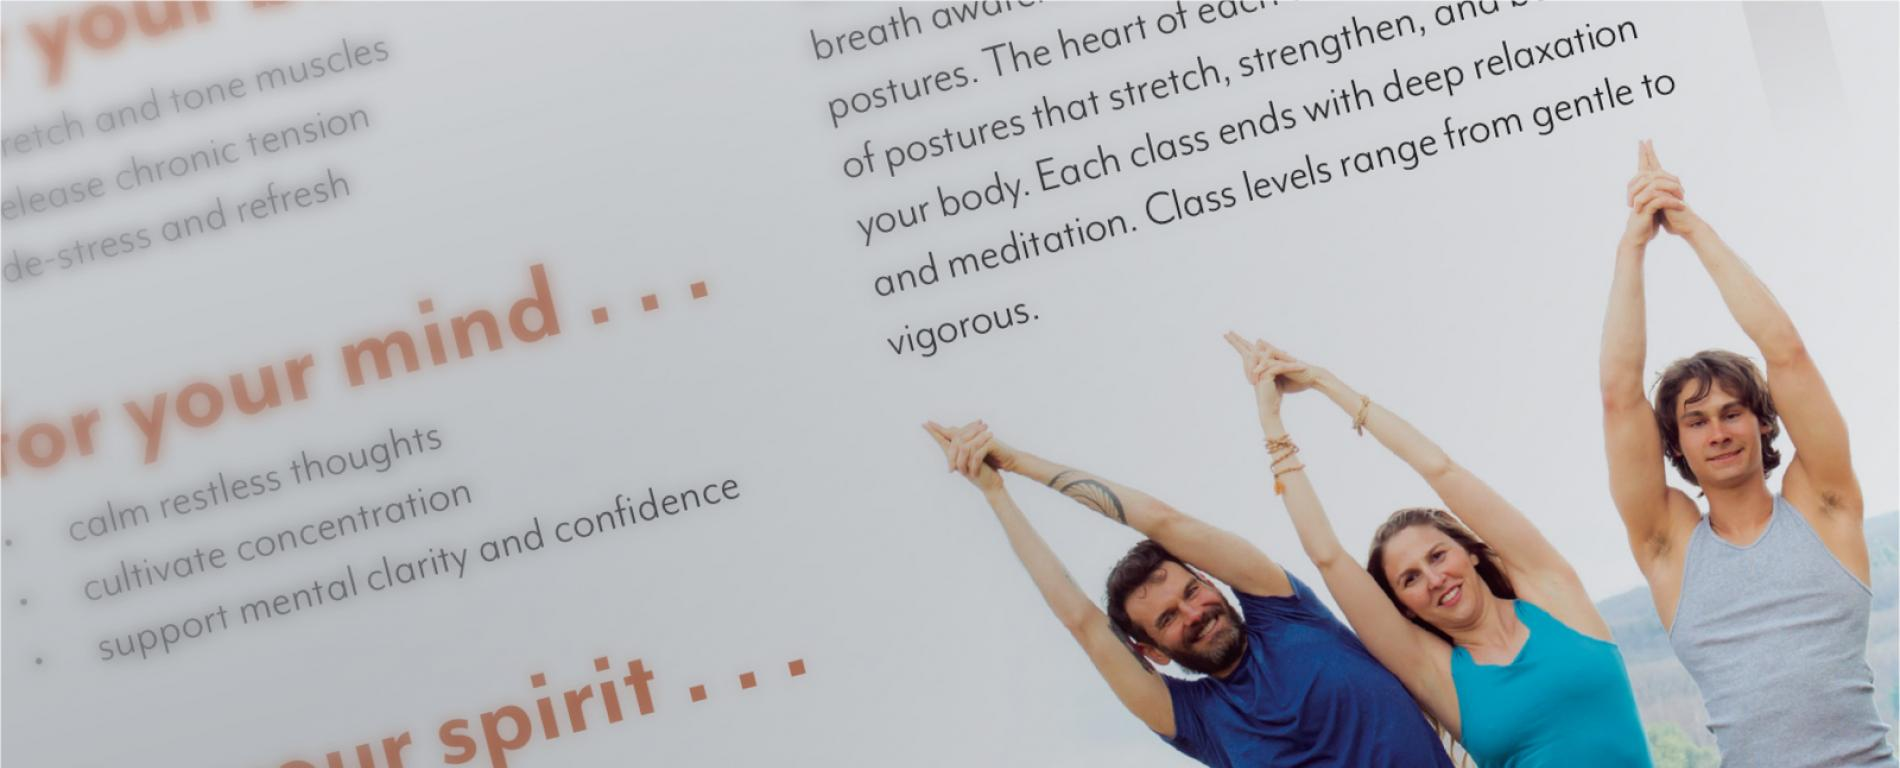 Kripalu Yoga and Ayurveda Brochures  Kripalu